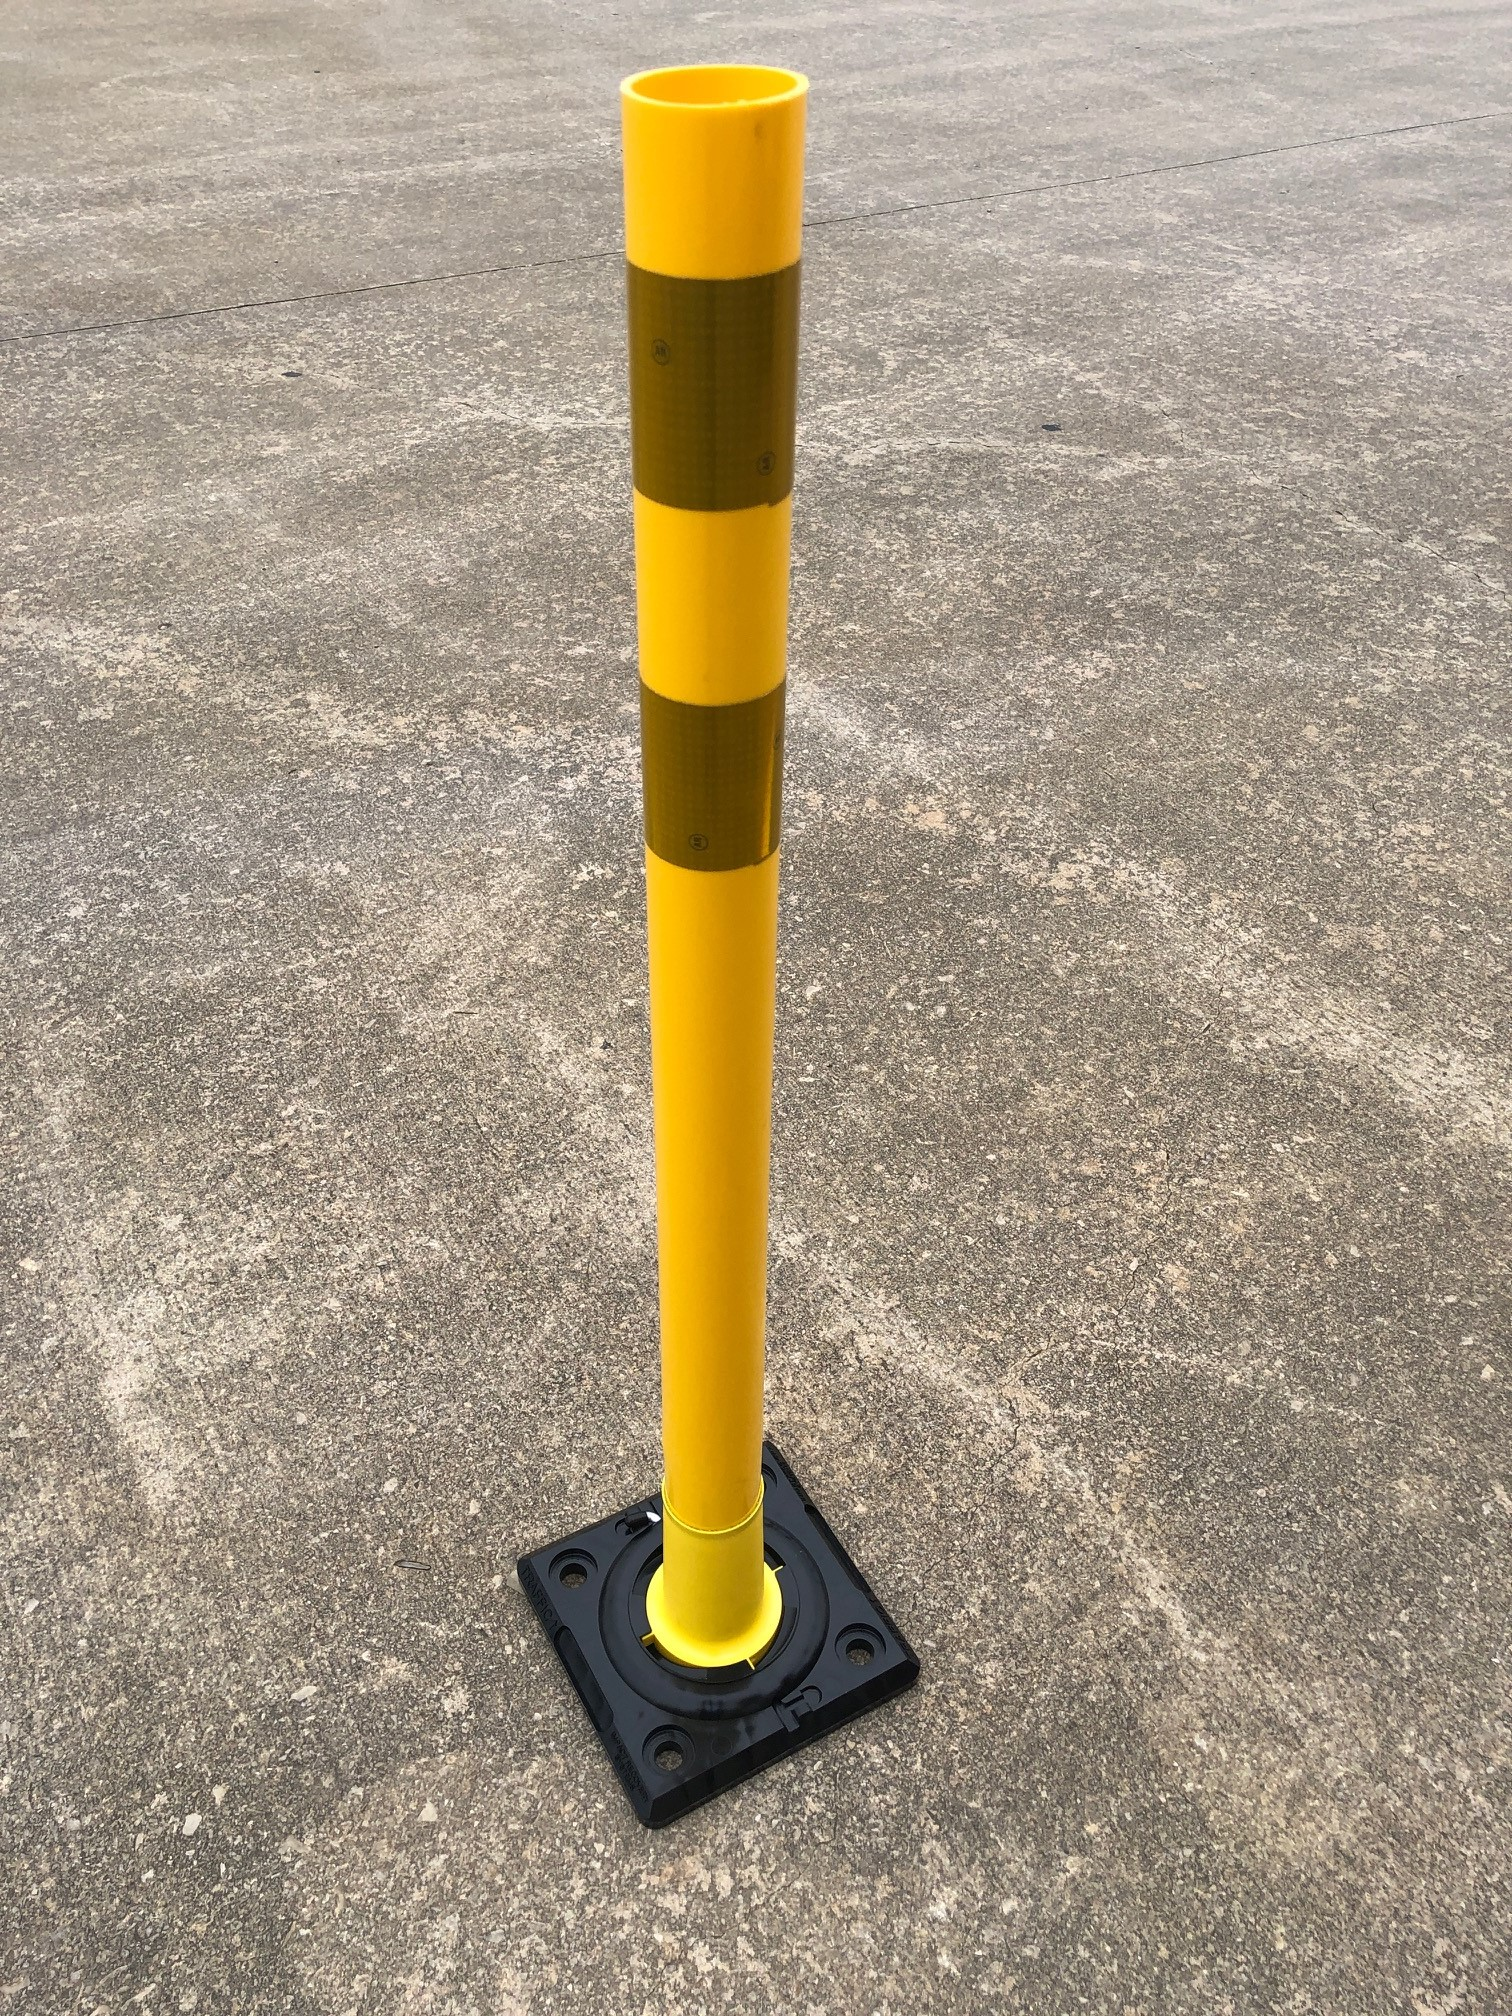 Featured Product: OmegaPost High Speed Delineator